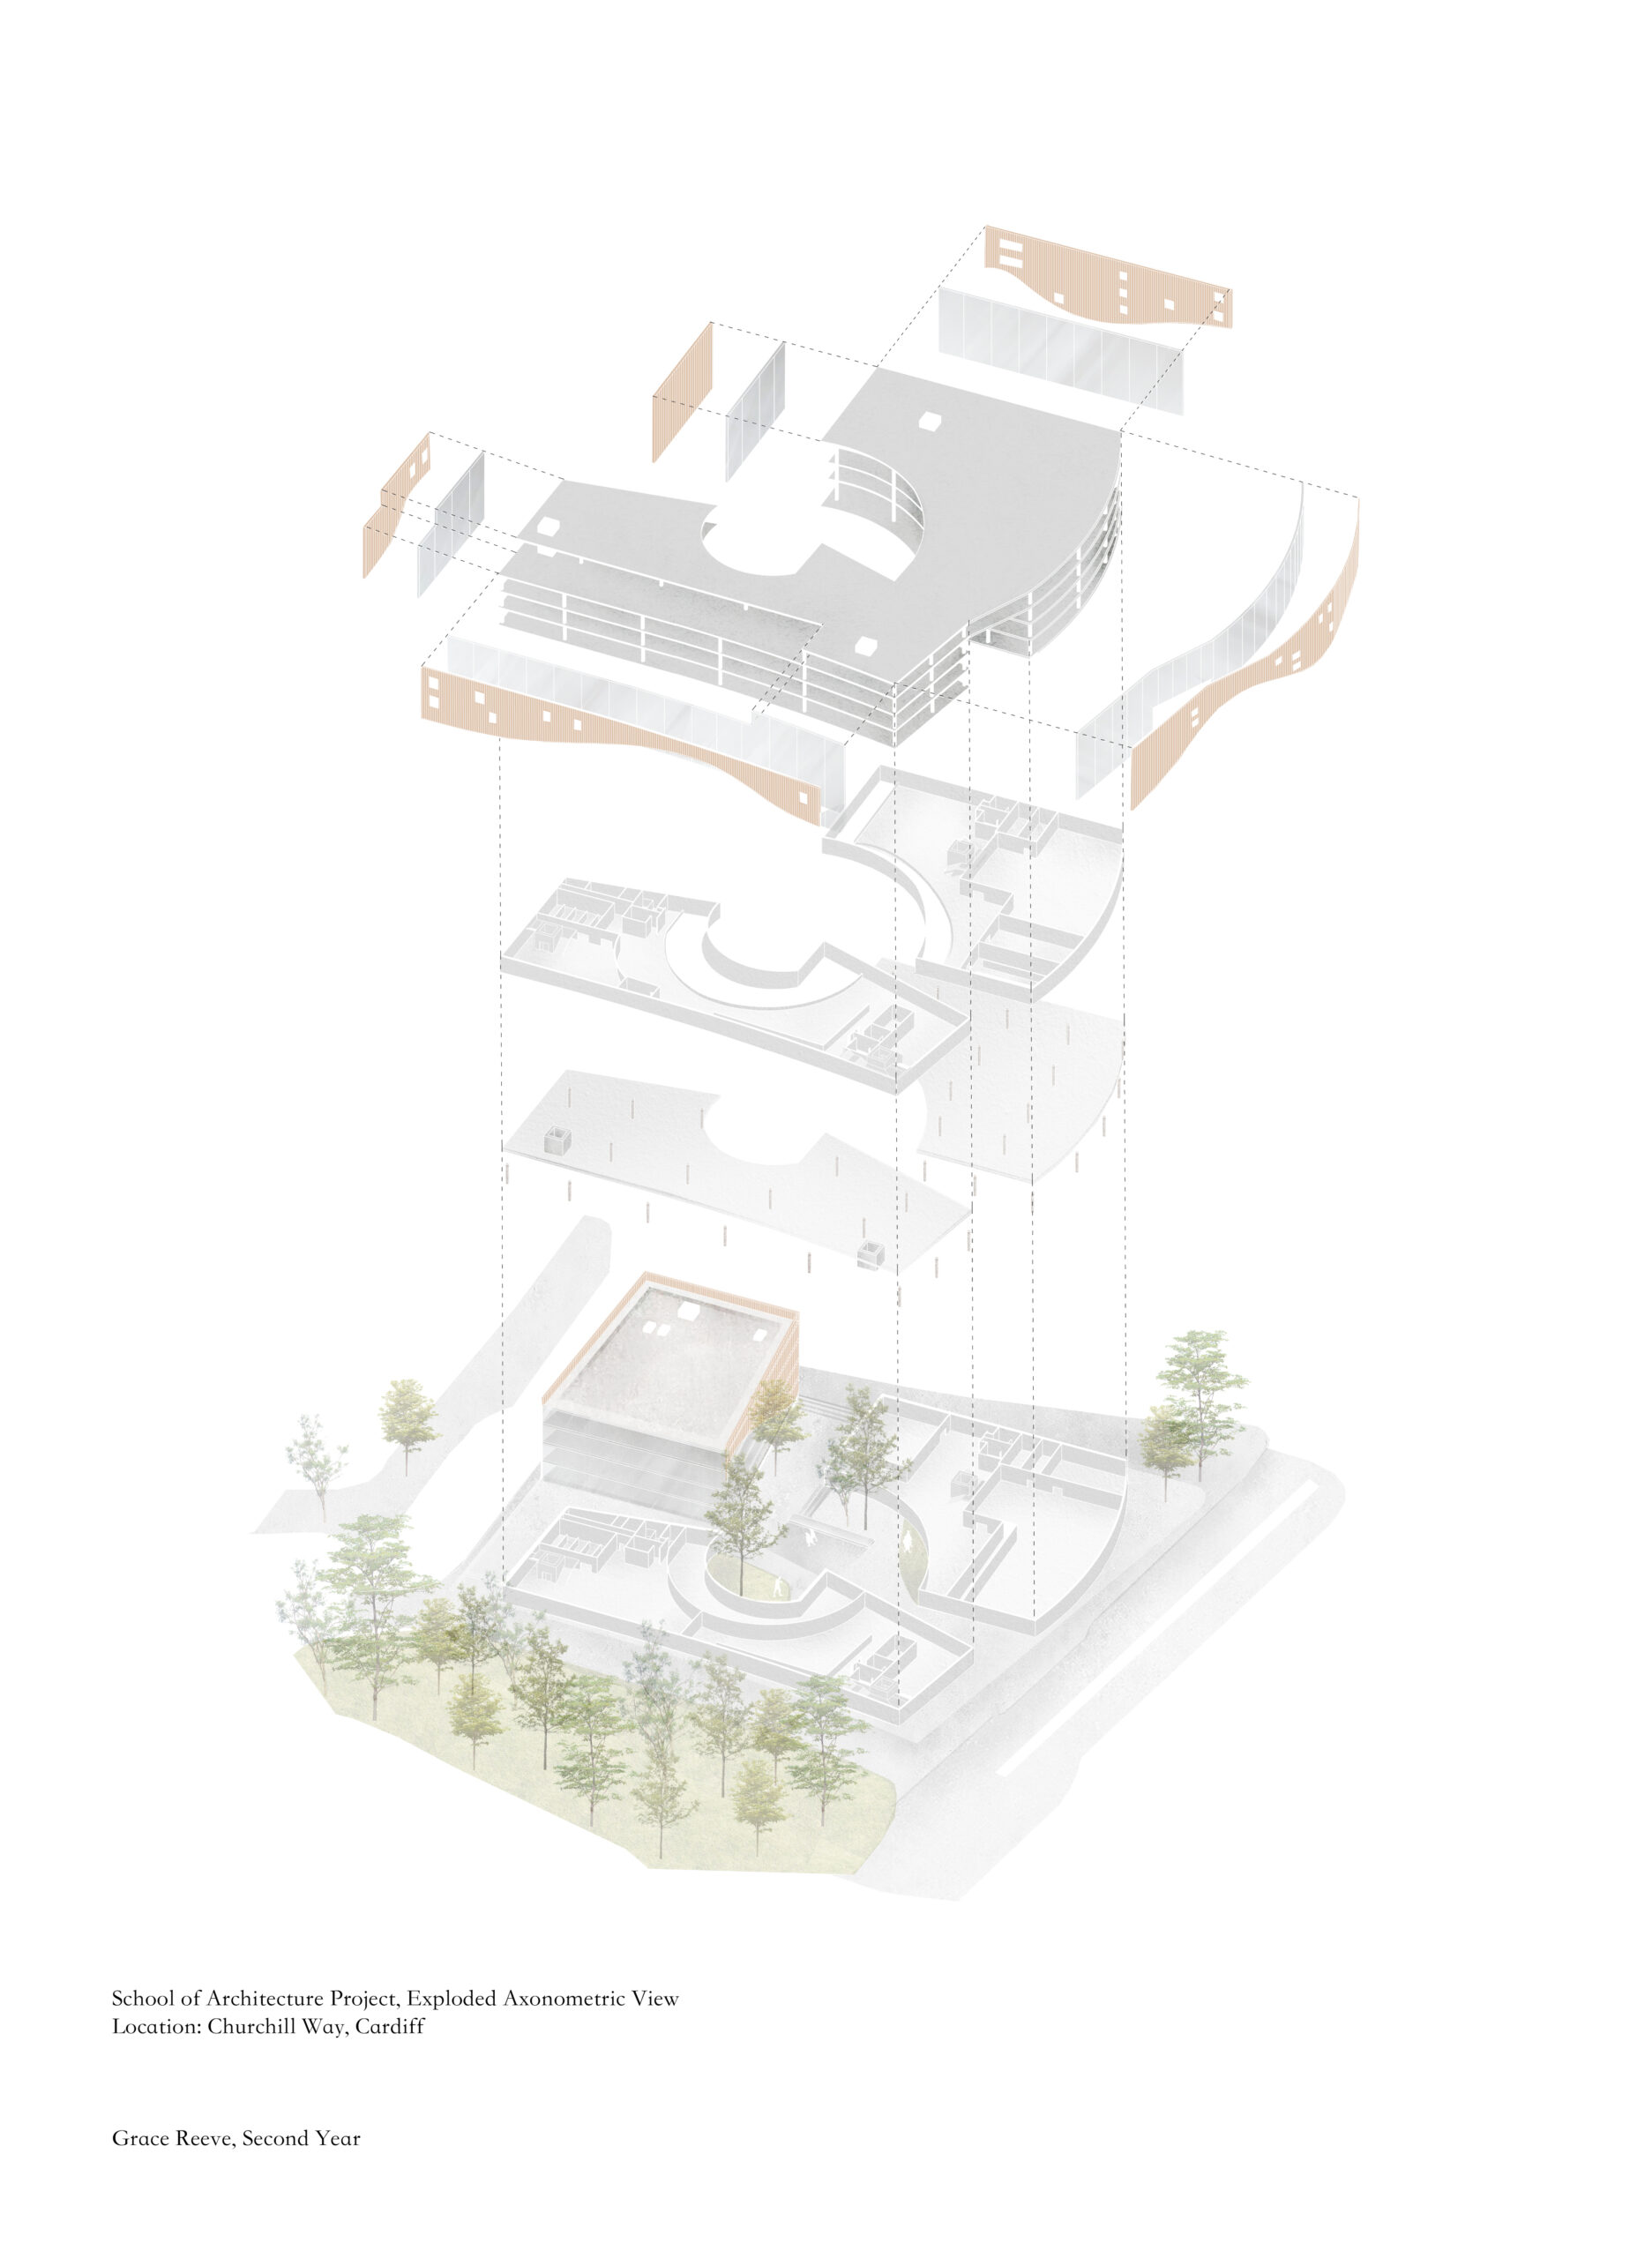 Exploded Axonometric showing building components in Grace Reeve's project